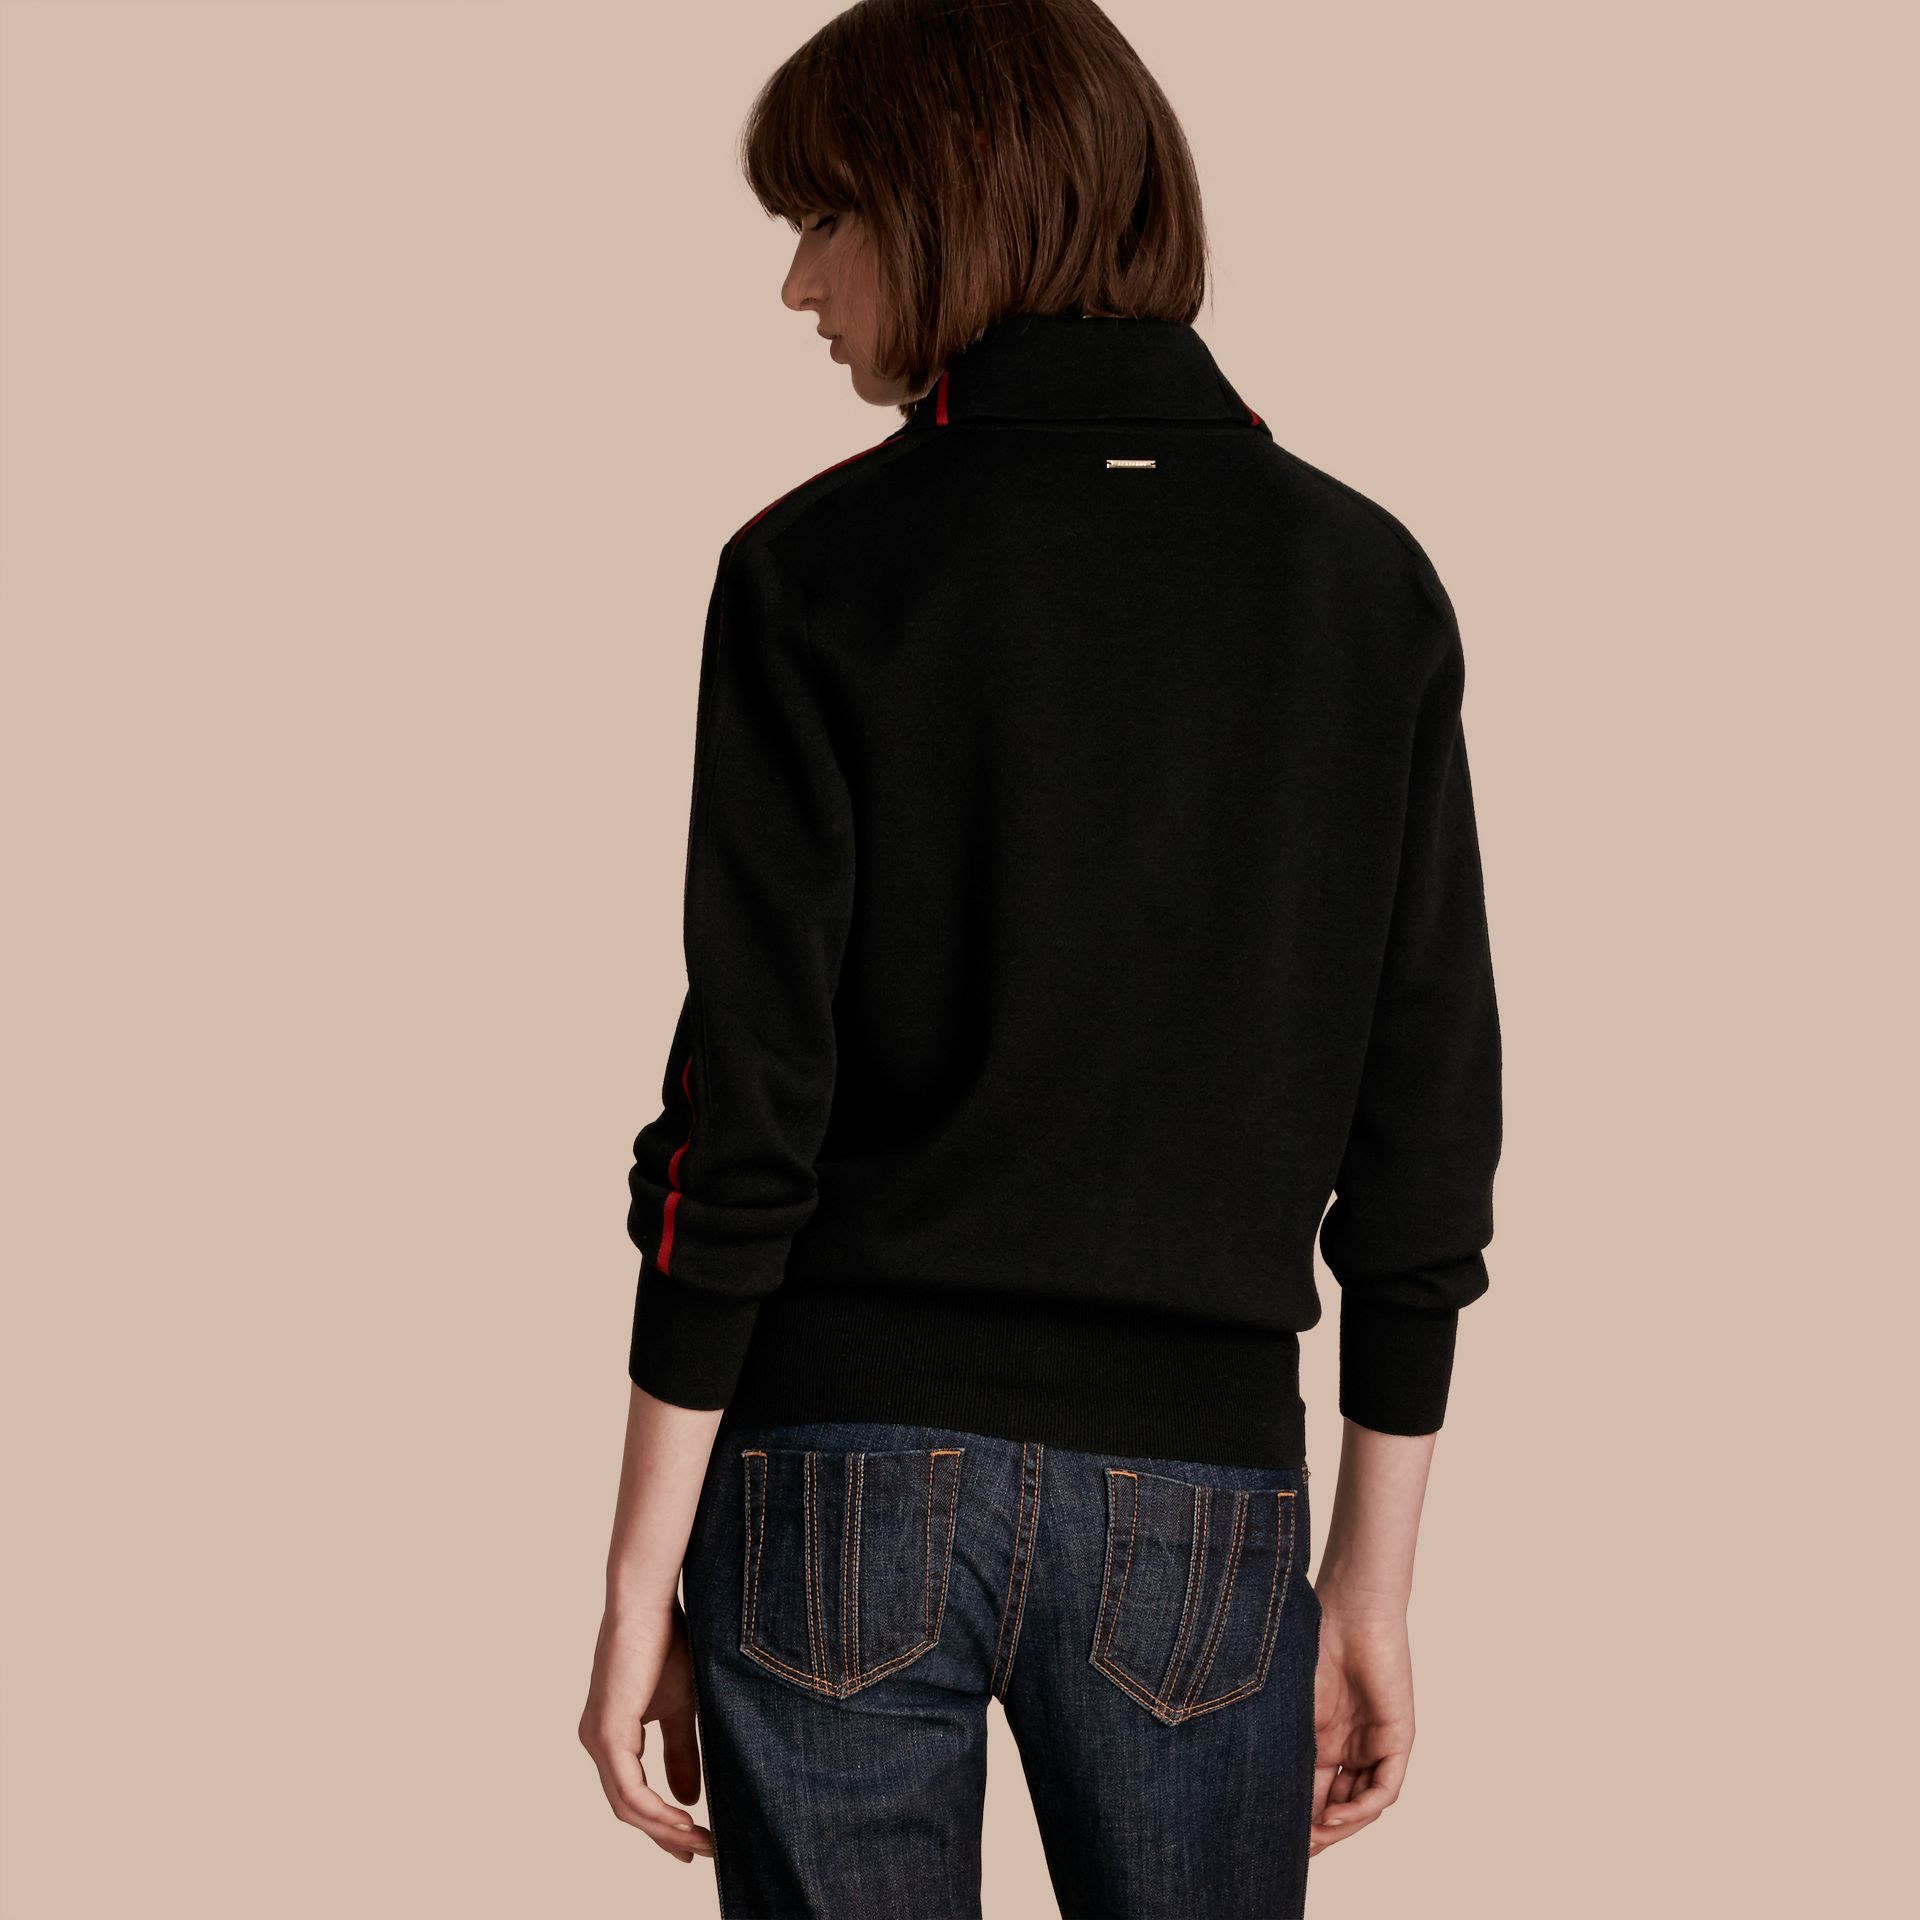 Noir Cardigan en laine stretch avec zip - photo de la galerie 3